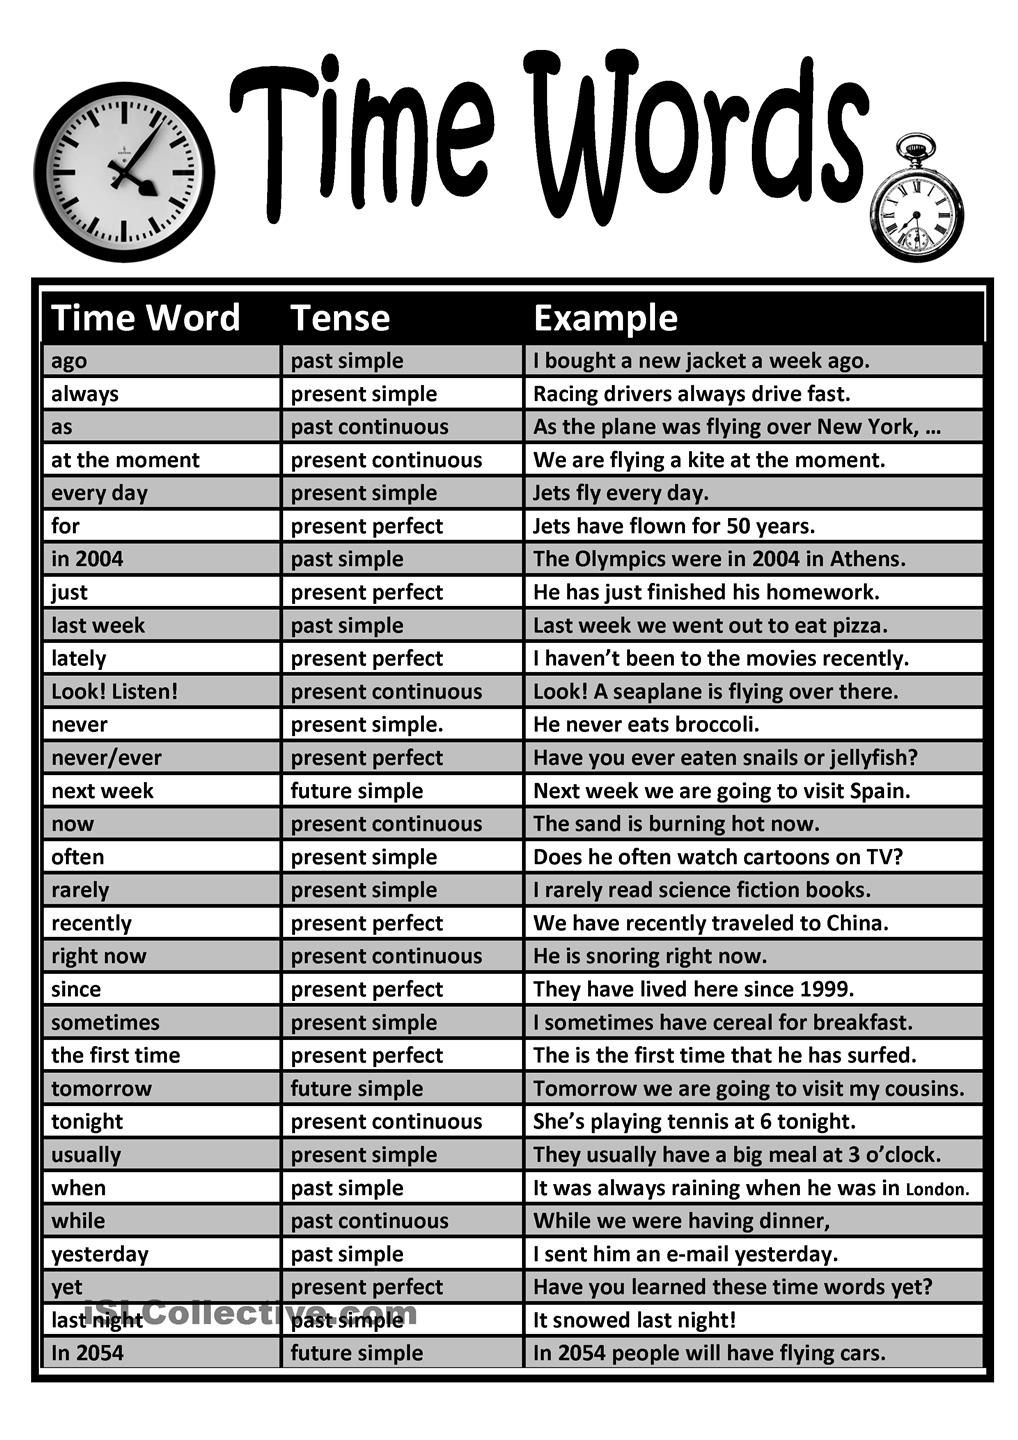 Time Words Chart Sentence Examples Words English Grammar Tenses